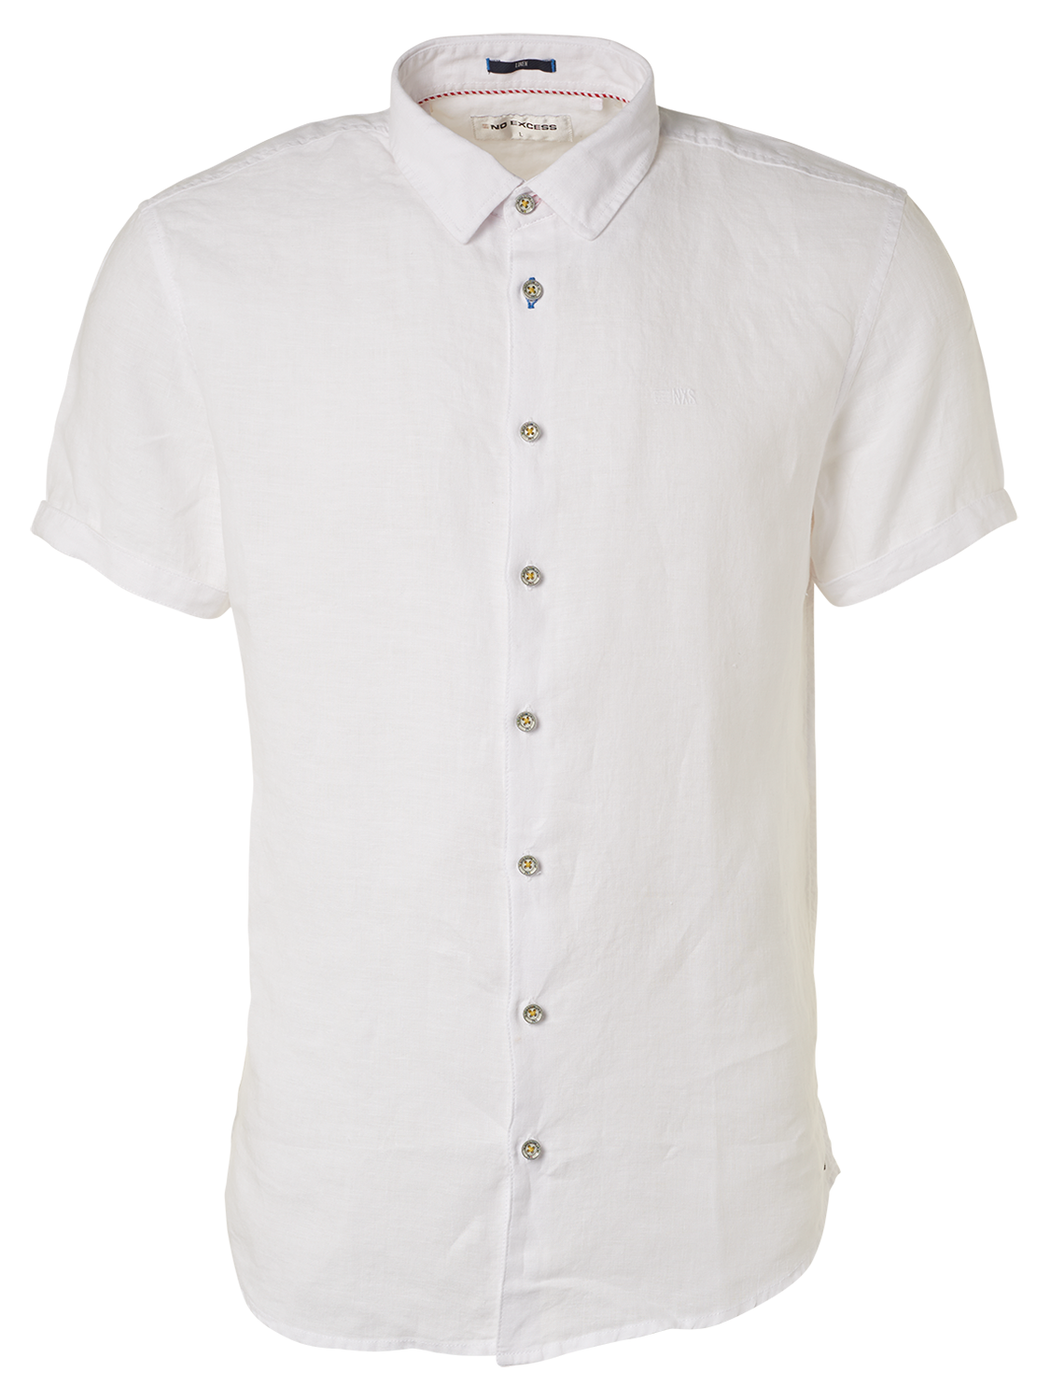 Mens S/S Linen Shirt - White | Shop No Excess at Wallace and Gibbs